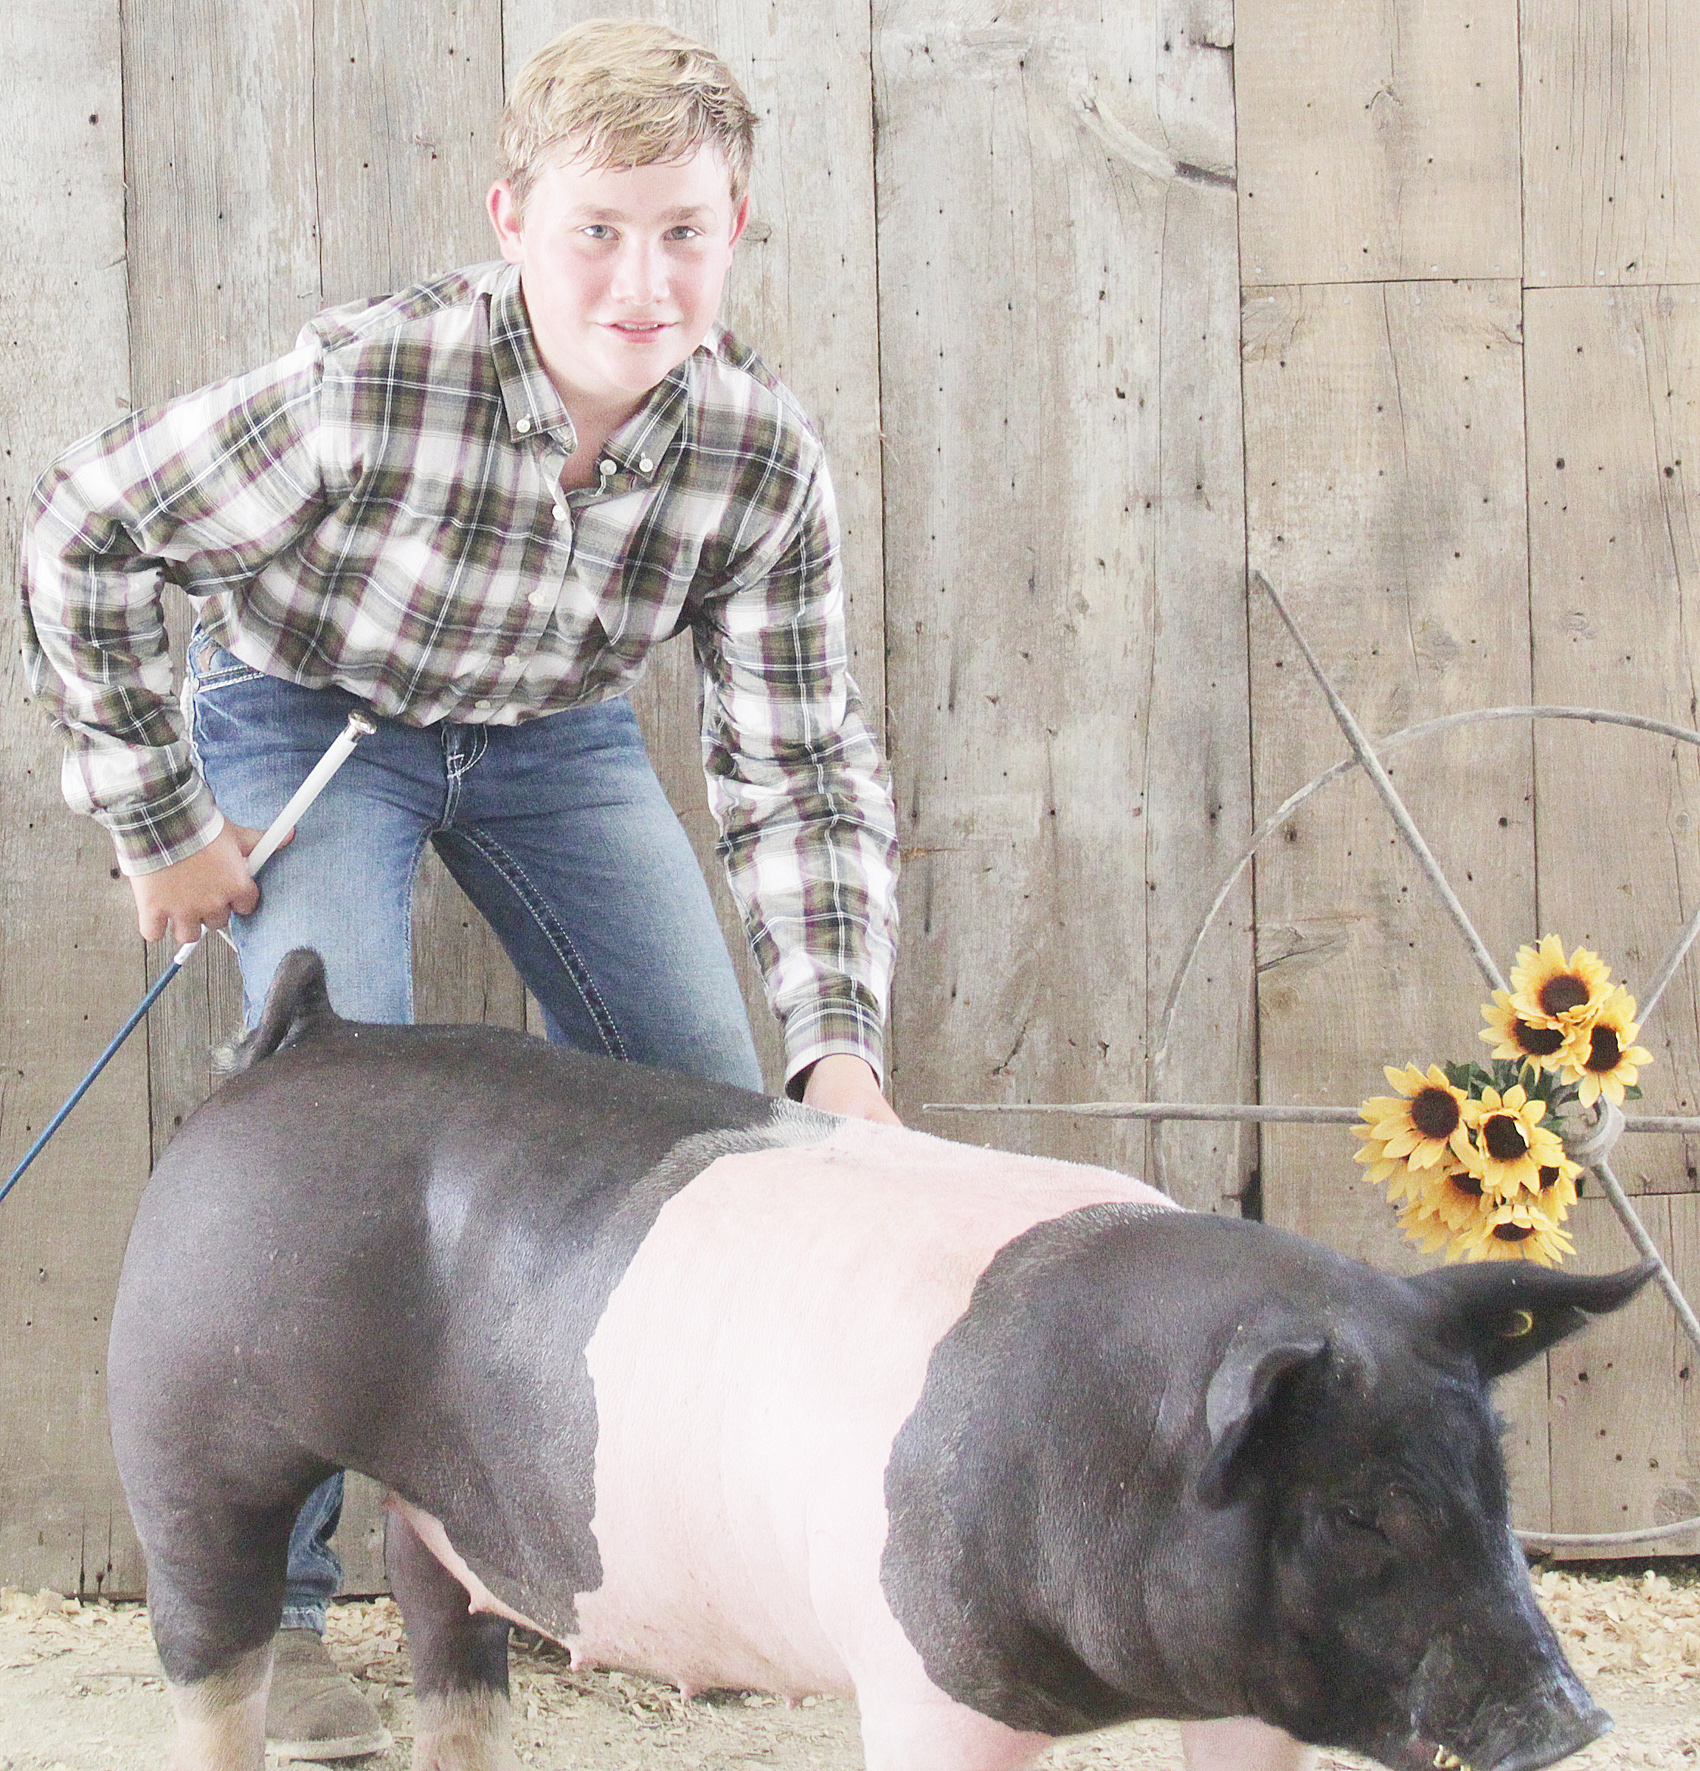 Reece Burns of the Straight Arrows 4-H Club was named Champion intermediate hog showman at the 2020 Jackson County Fair.